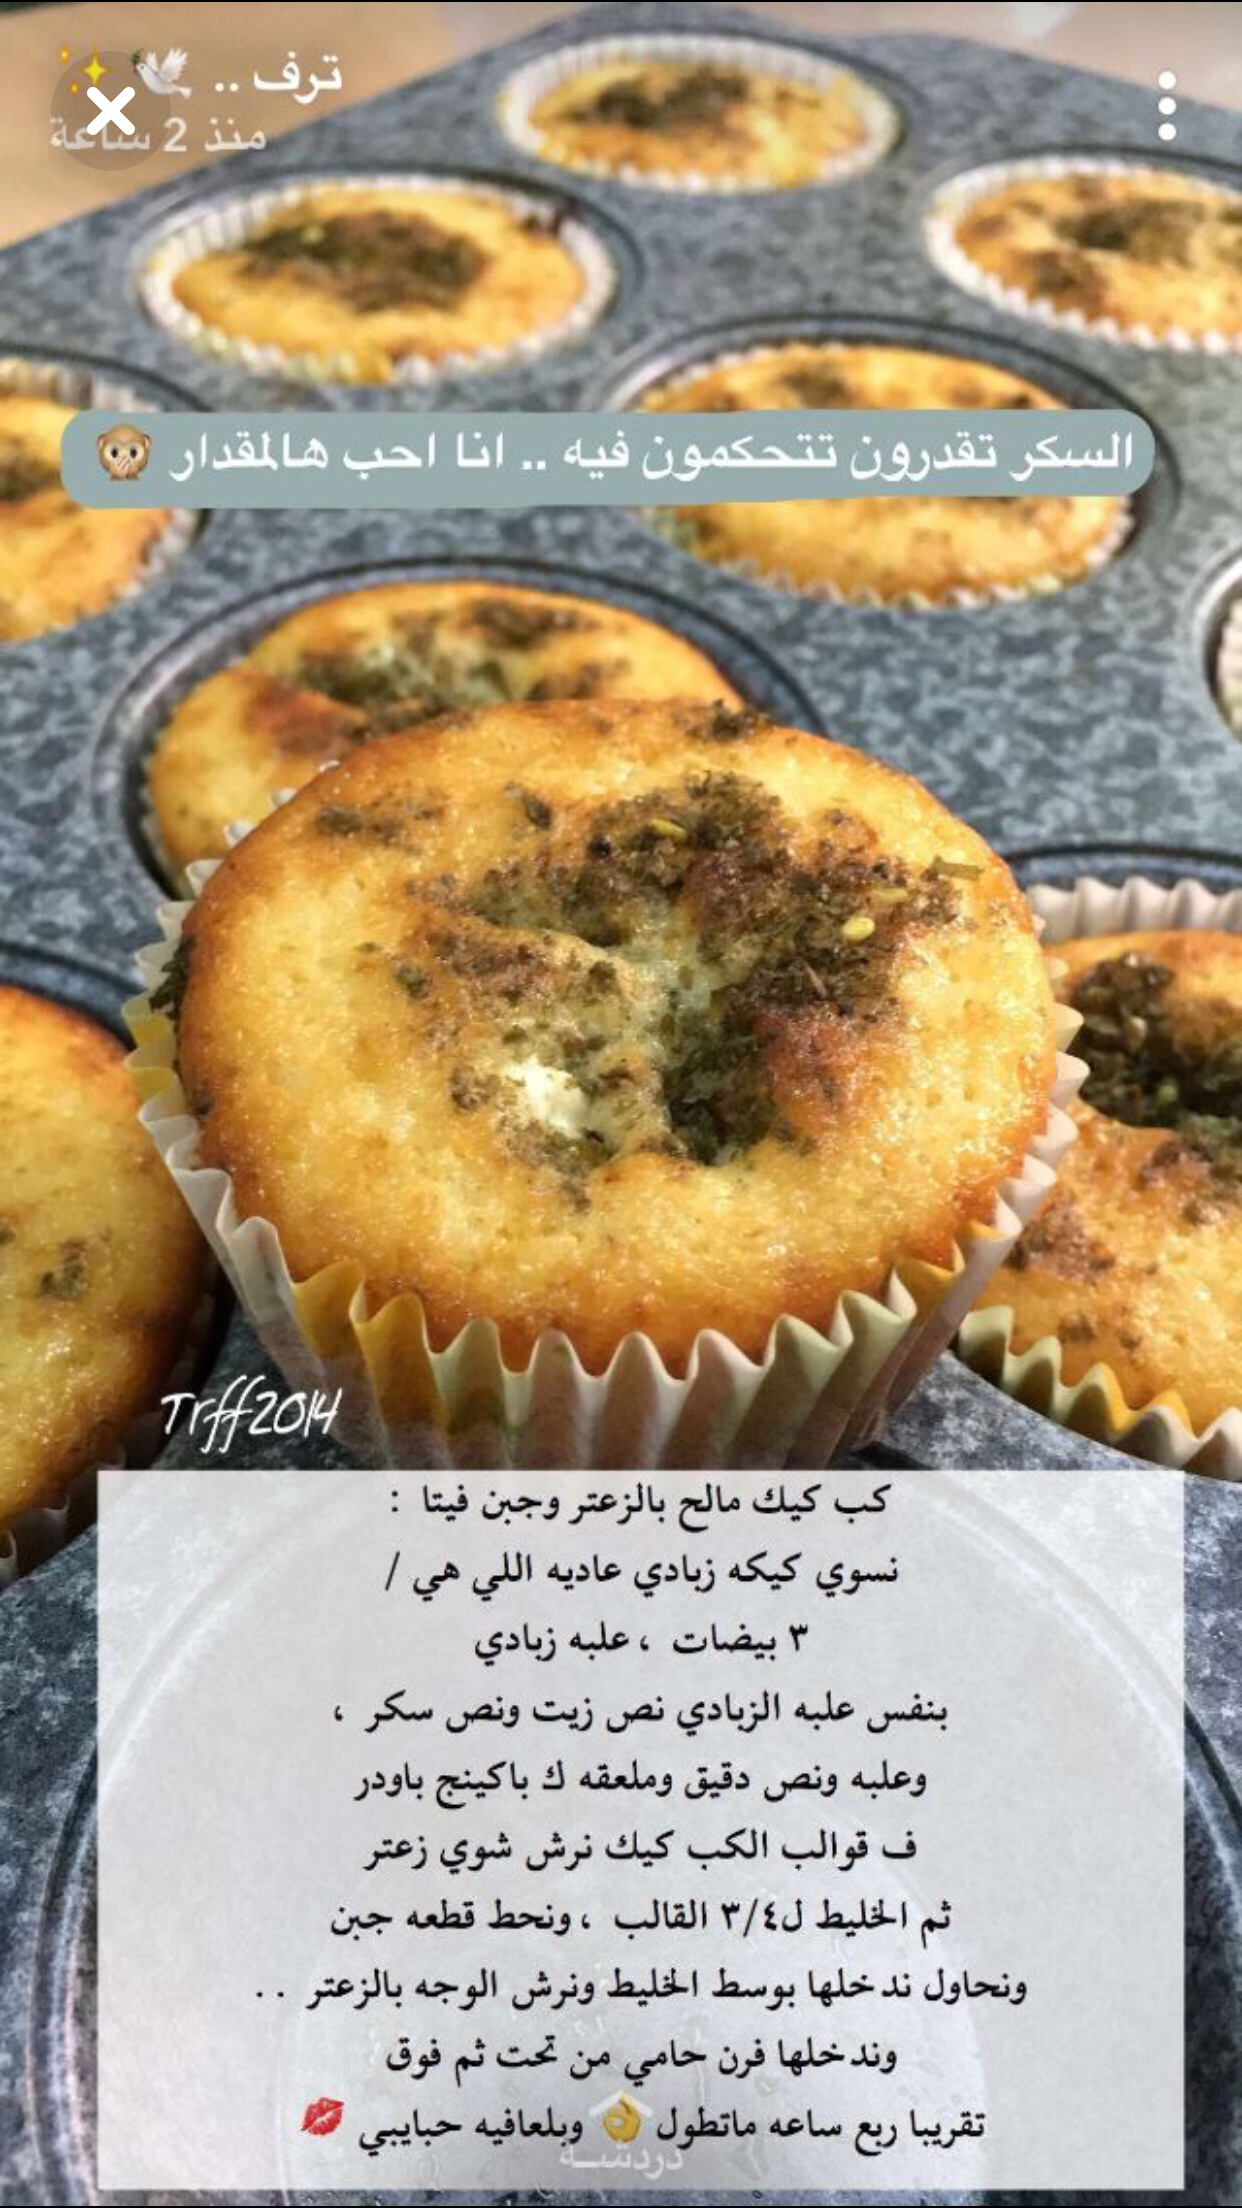 Pin By Hebah On Recipes Cooking Recipes Desserts Sweets Recipes Arabic Food